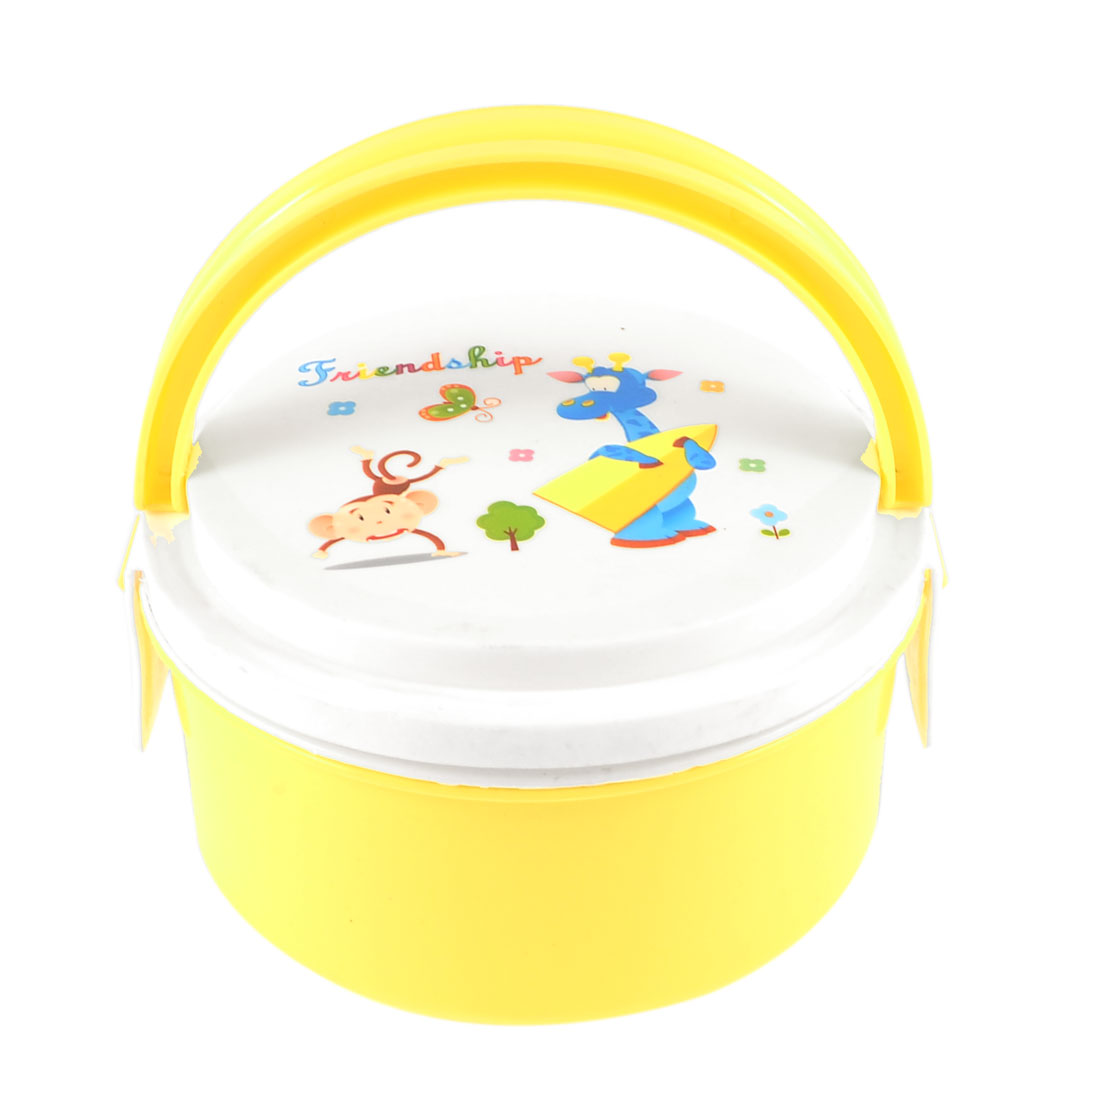 Camping Portable Plastic Handle Animals Printed Round Lunch Box Yellow White